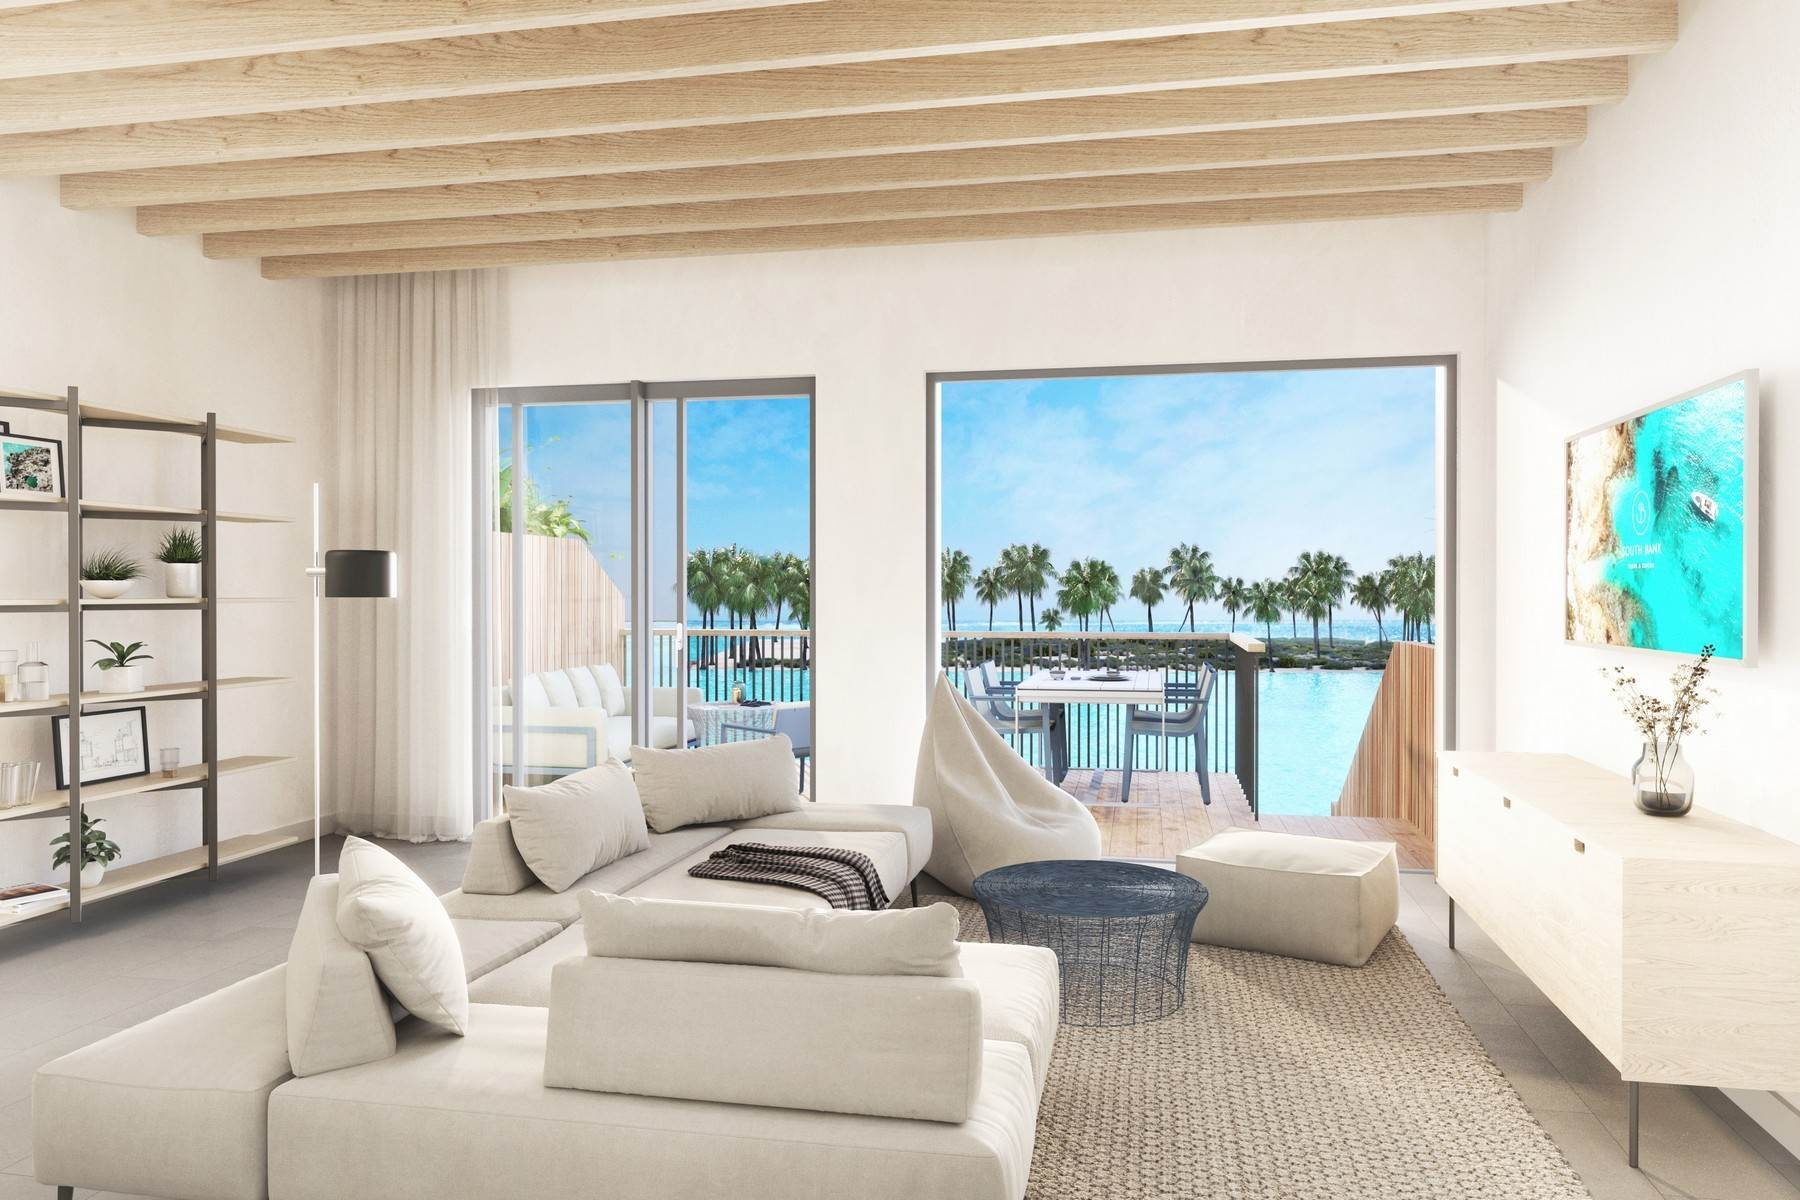 6. Condominiums for Sale at SOUTH BANK - BOATHOUSES - TWO BEDROOM PLUS ROOFTOP TERRACE - E1 South Bank, Long Bay, Providenciales Turks And Caicos Islands